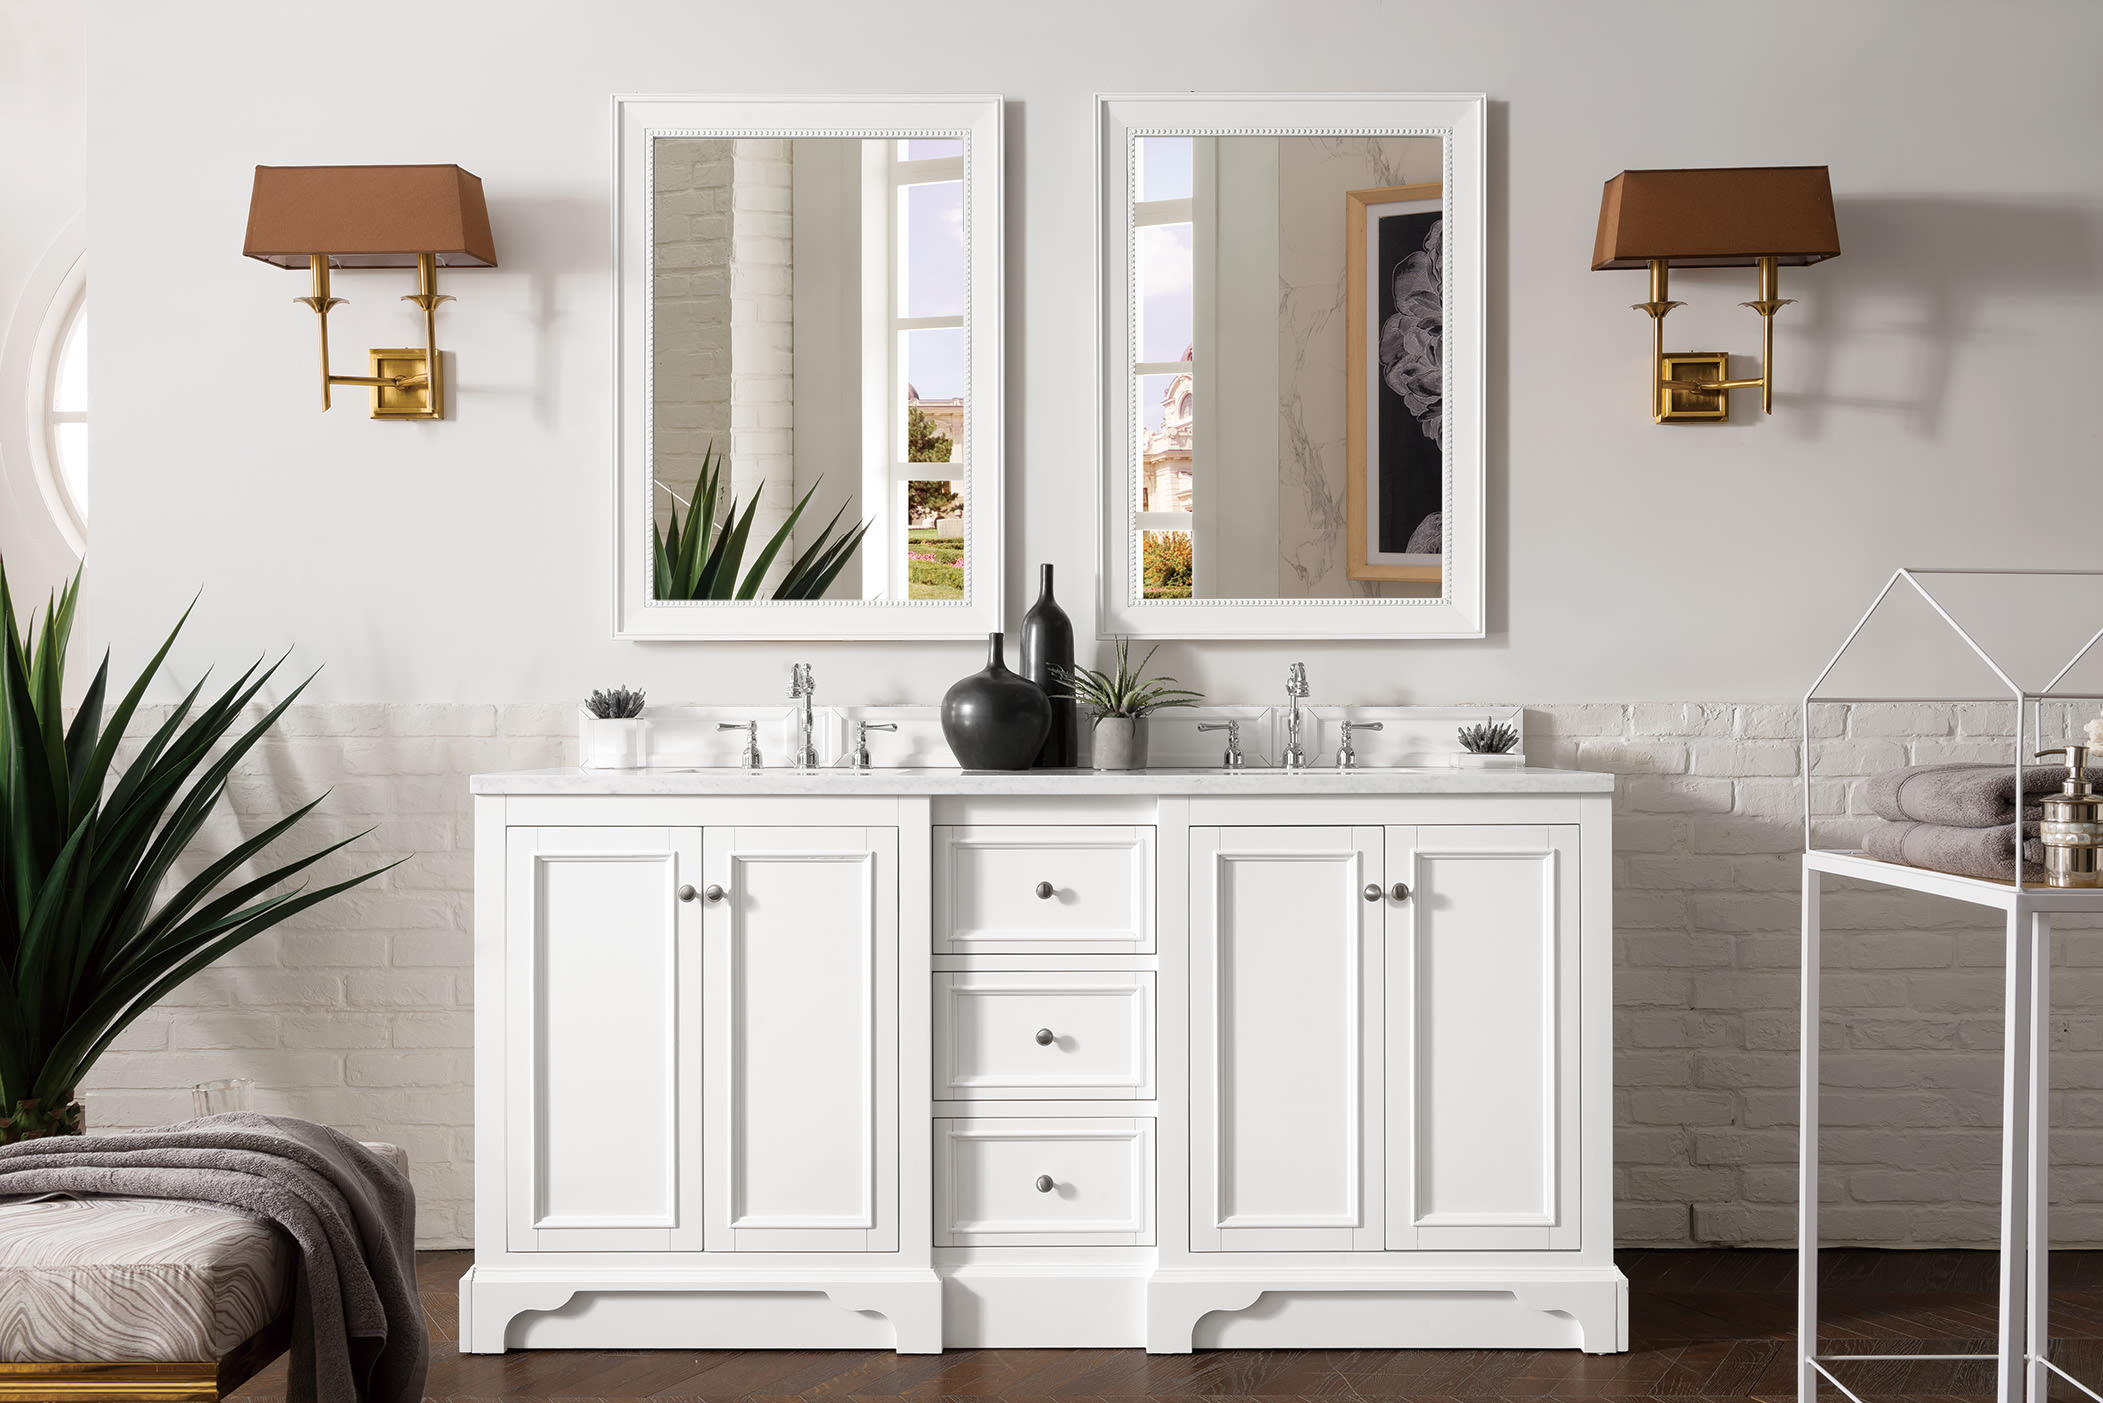 James Martin Vanities 825 V72 Bw 3clw Bright White De Soto 72 Double Basin Birch Wood Vanity Set With Usb Electrical Outlet And Classic White Quartz Vanity Top Faucetdirect Com